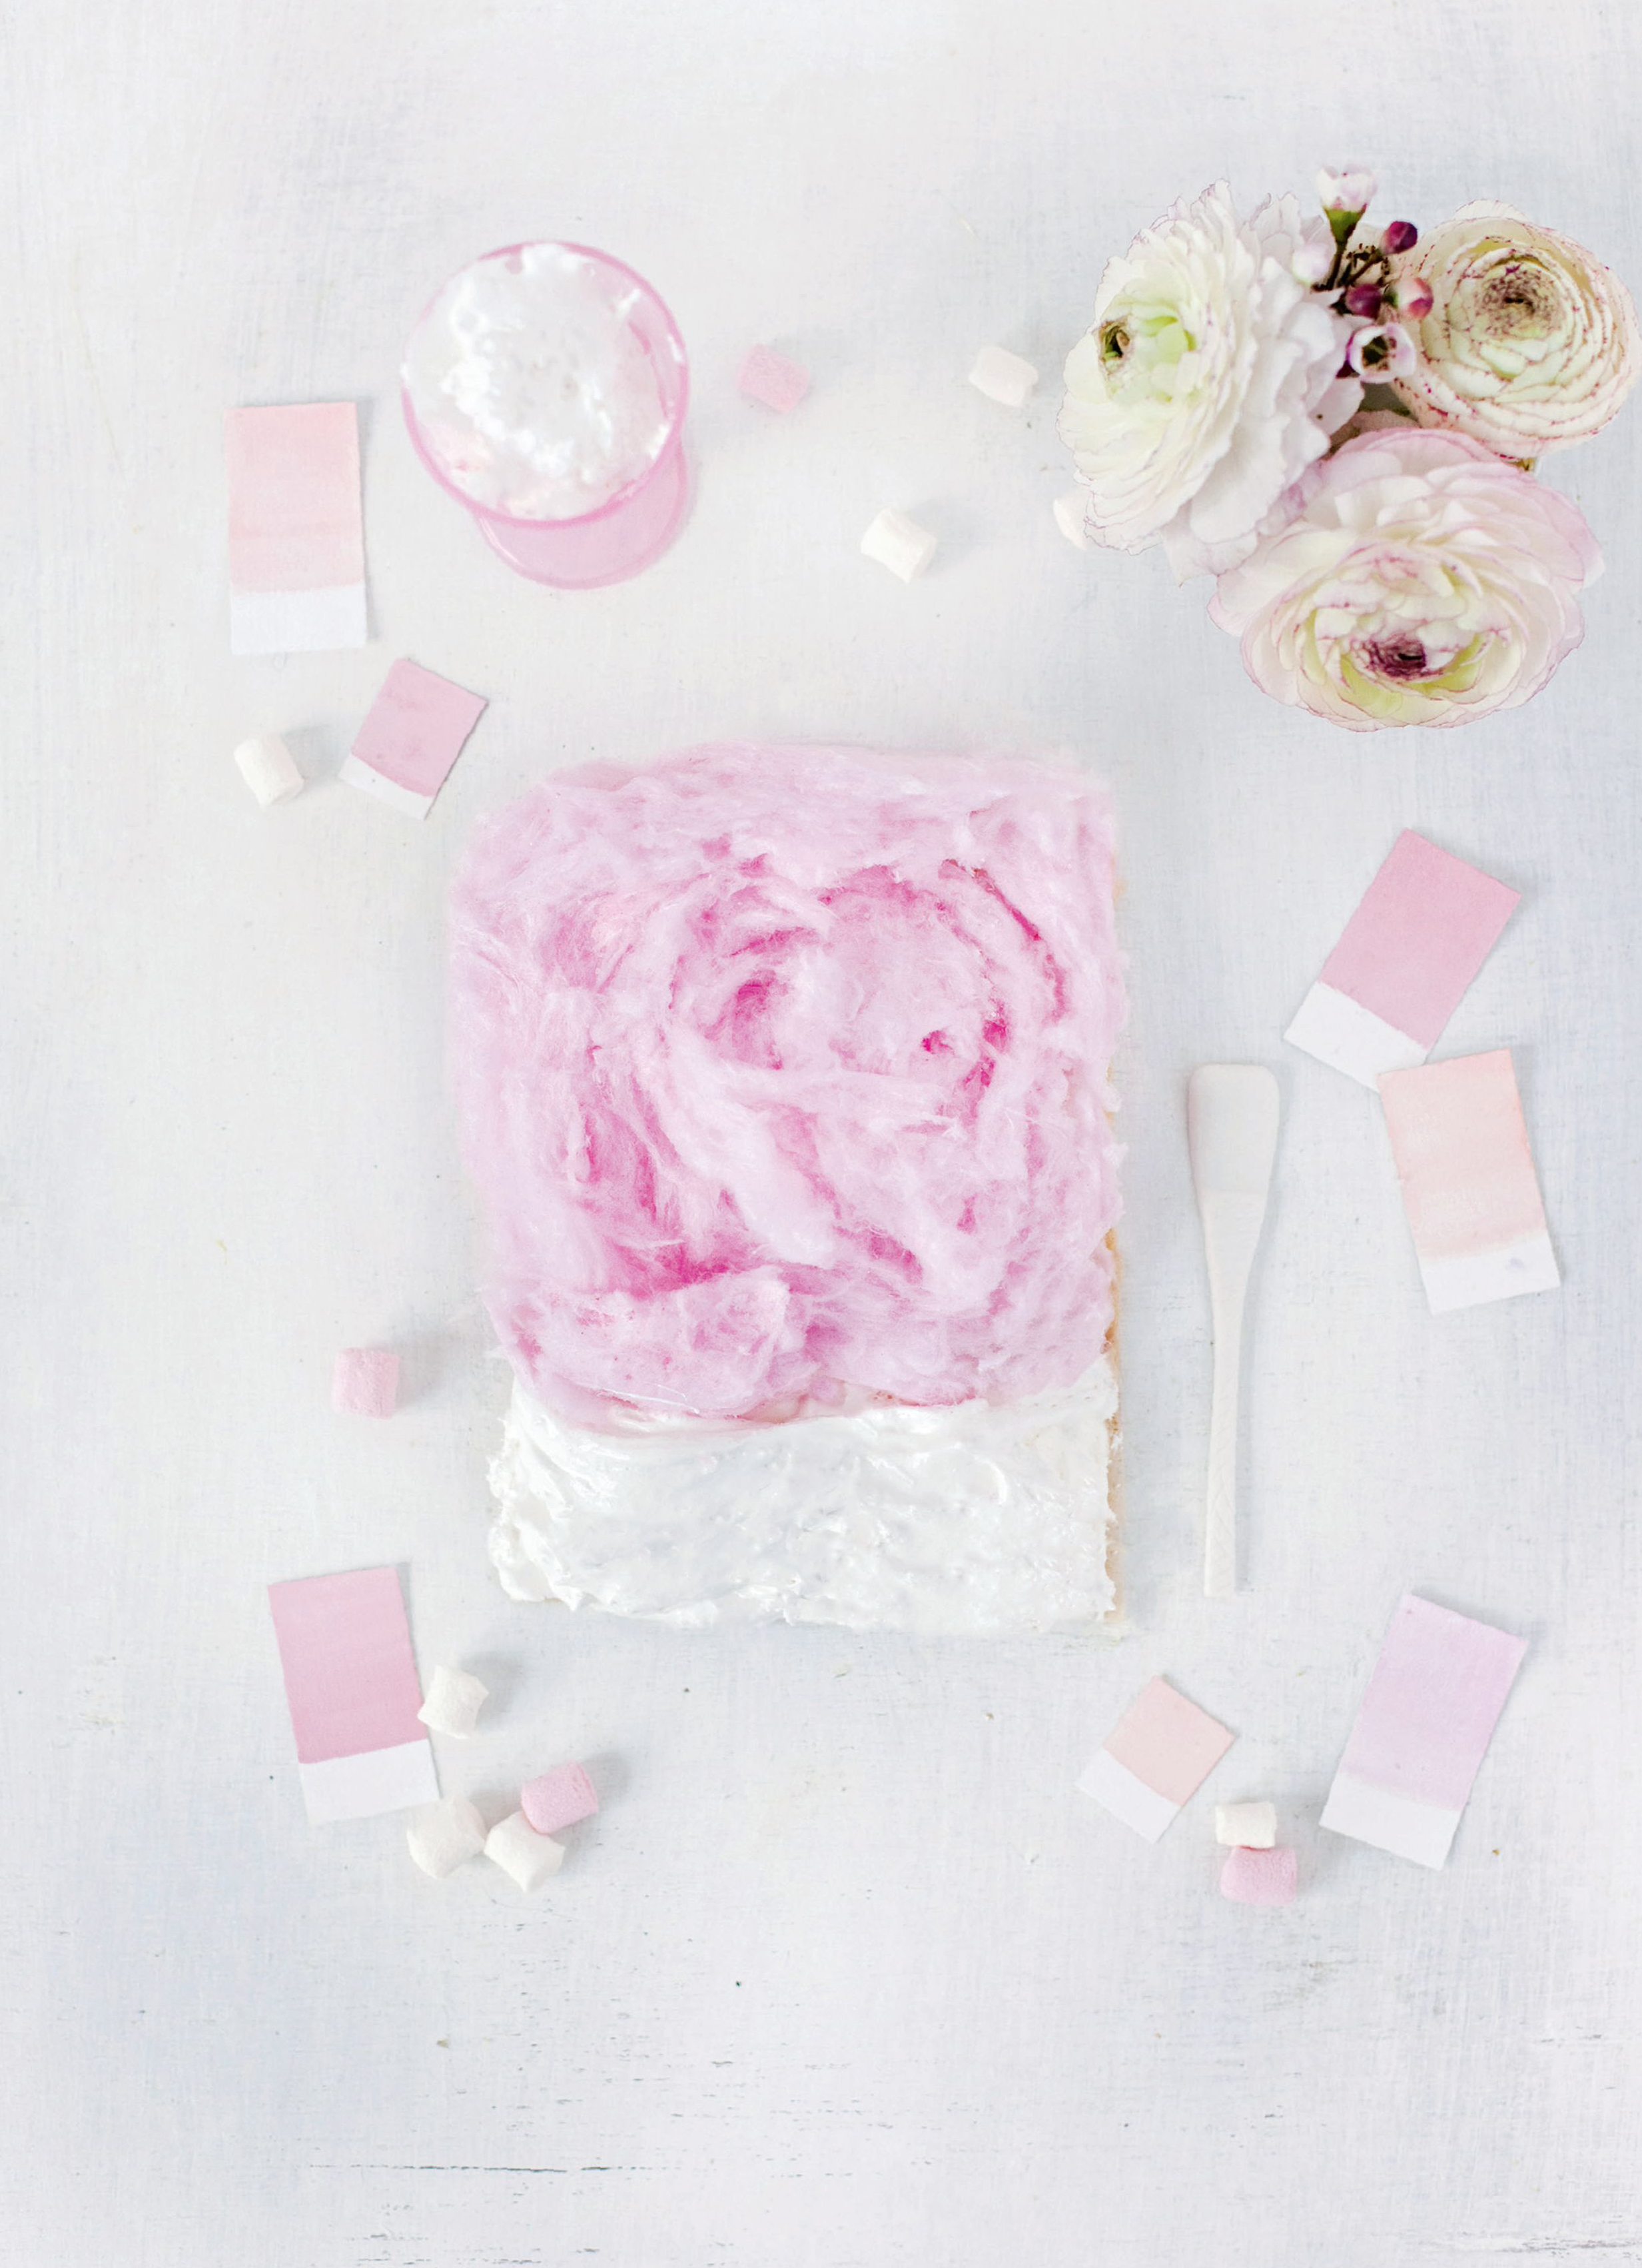 Cotton candy – marshmallow